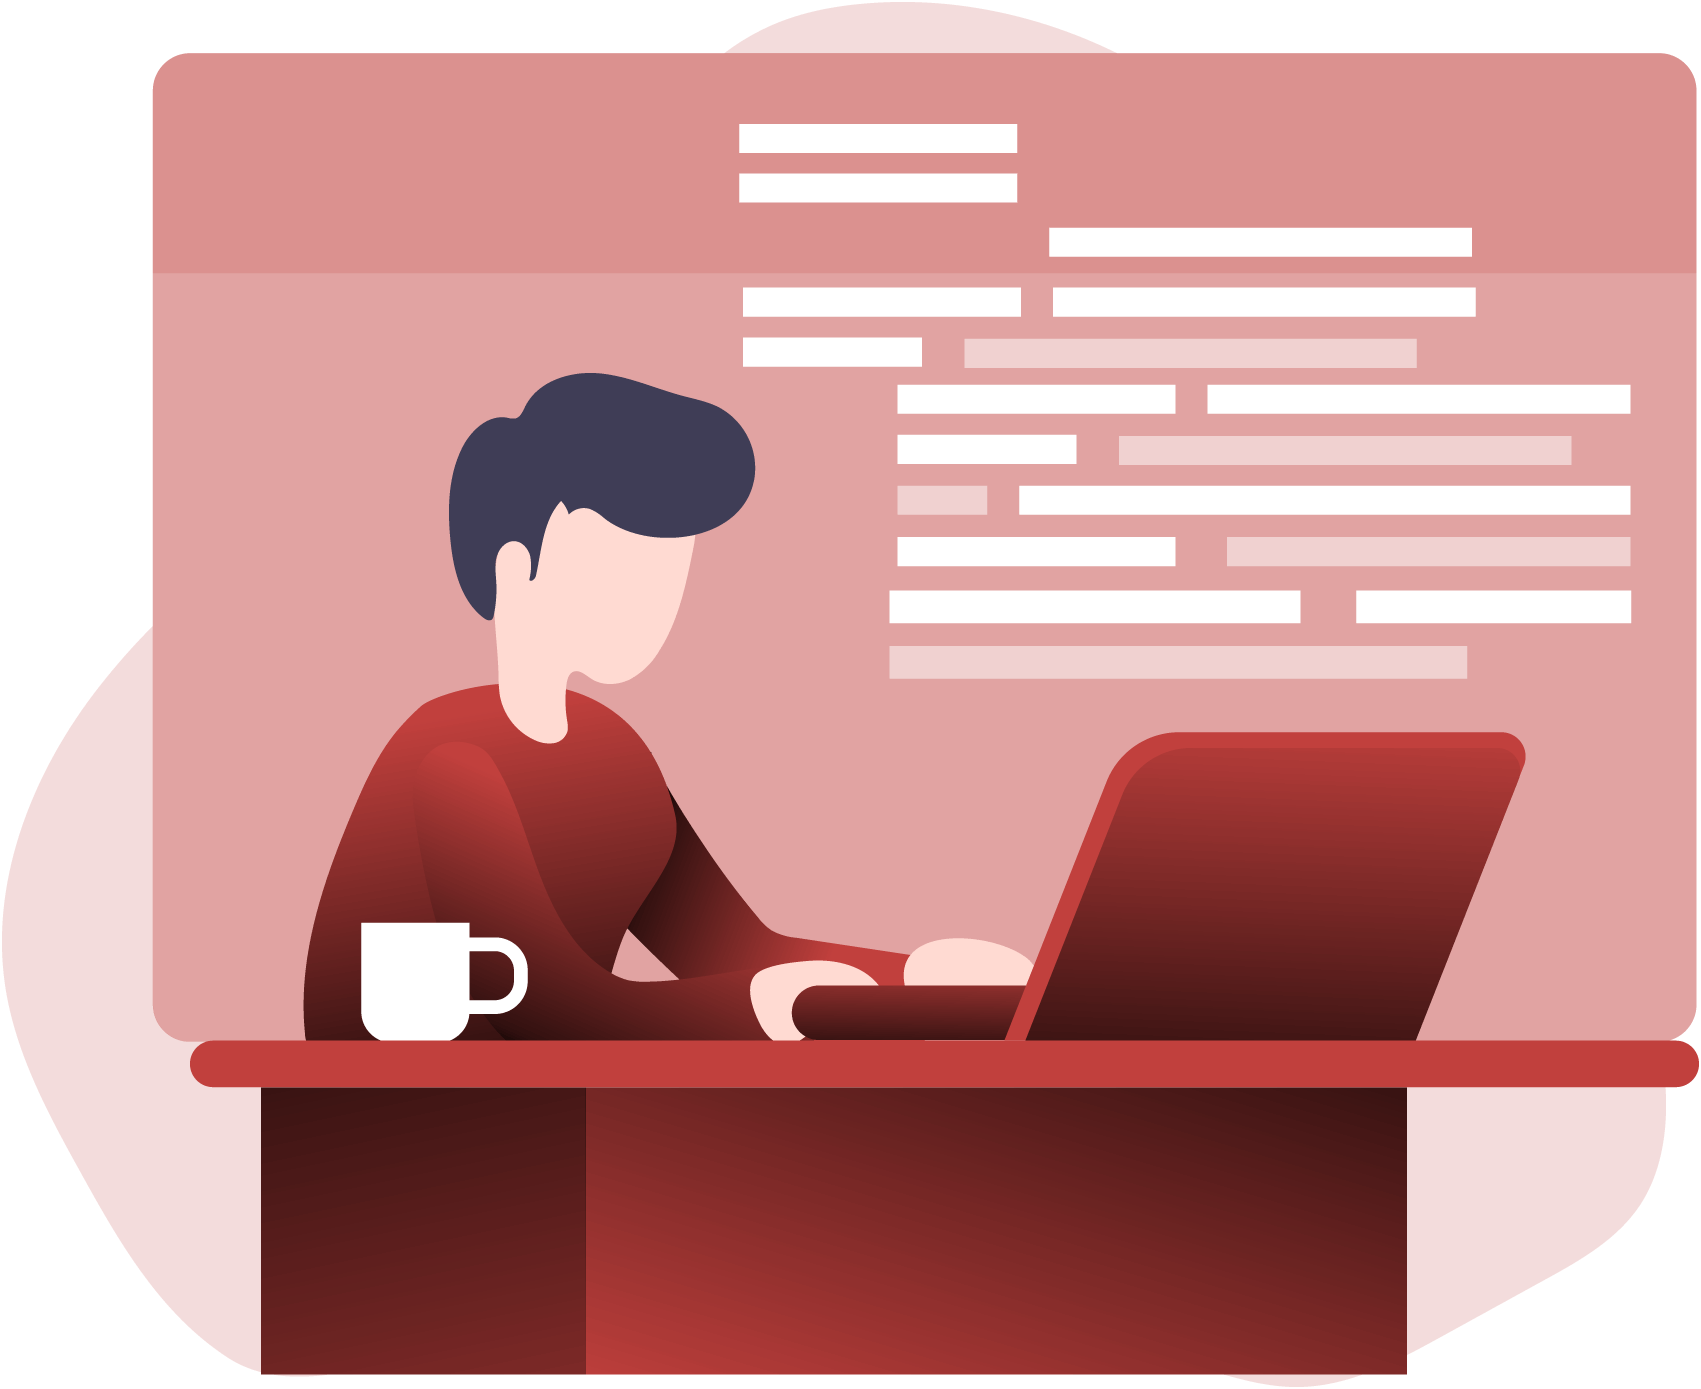 Using dotfiles and Git to manage your development environment across multiple computers